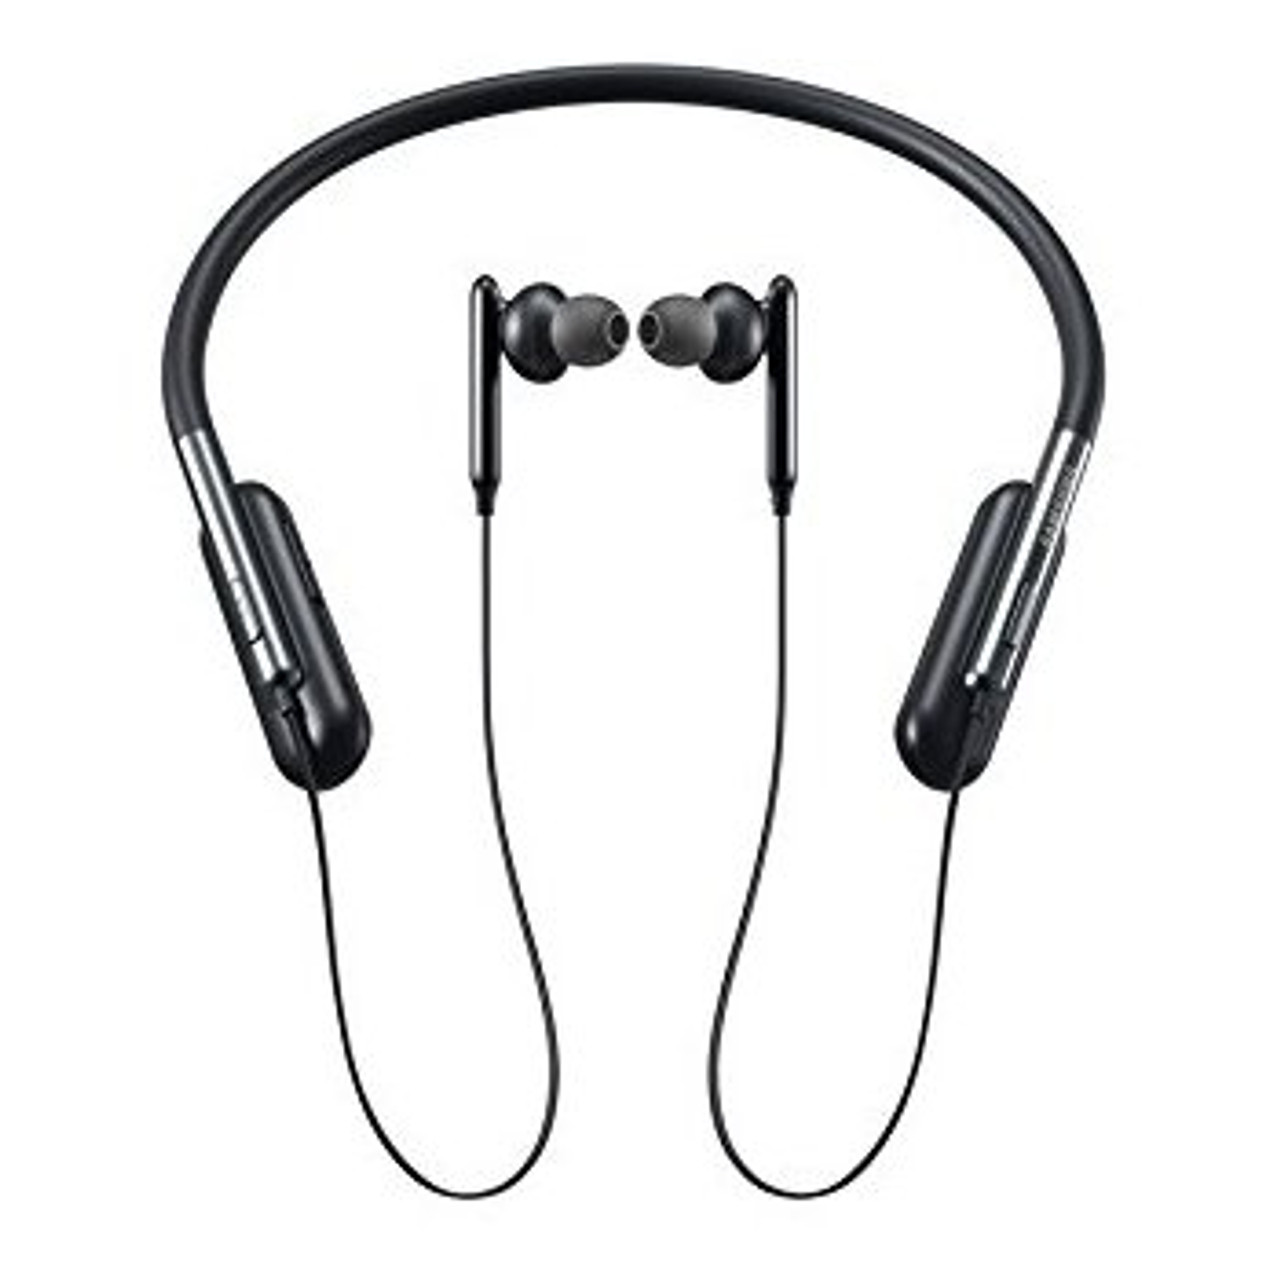 Samsung Flex Bg950 Wireless Bluetooth Headphones Ewirelessusa